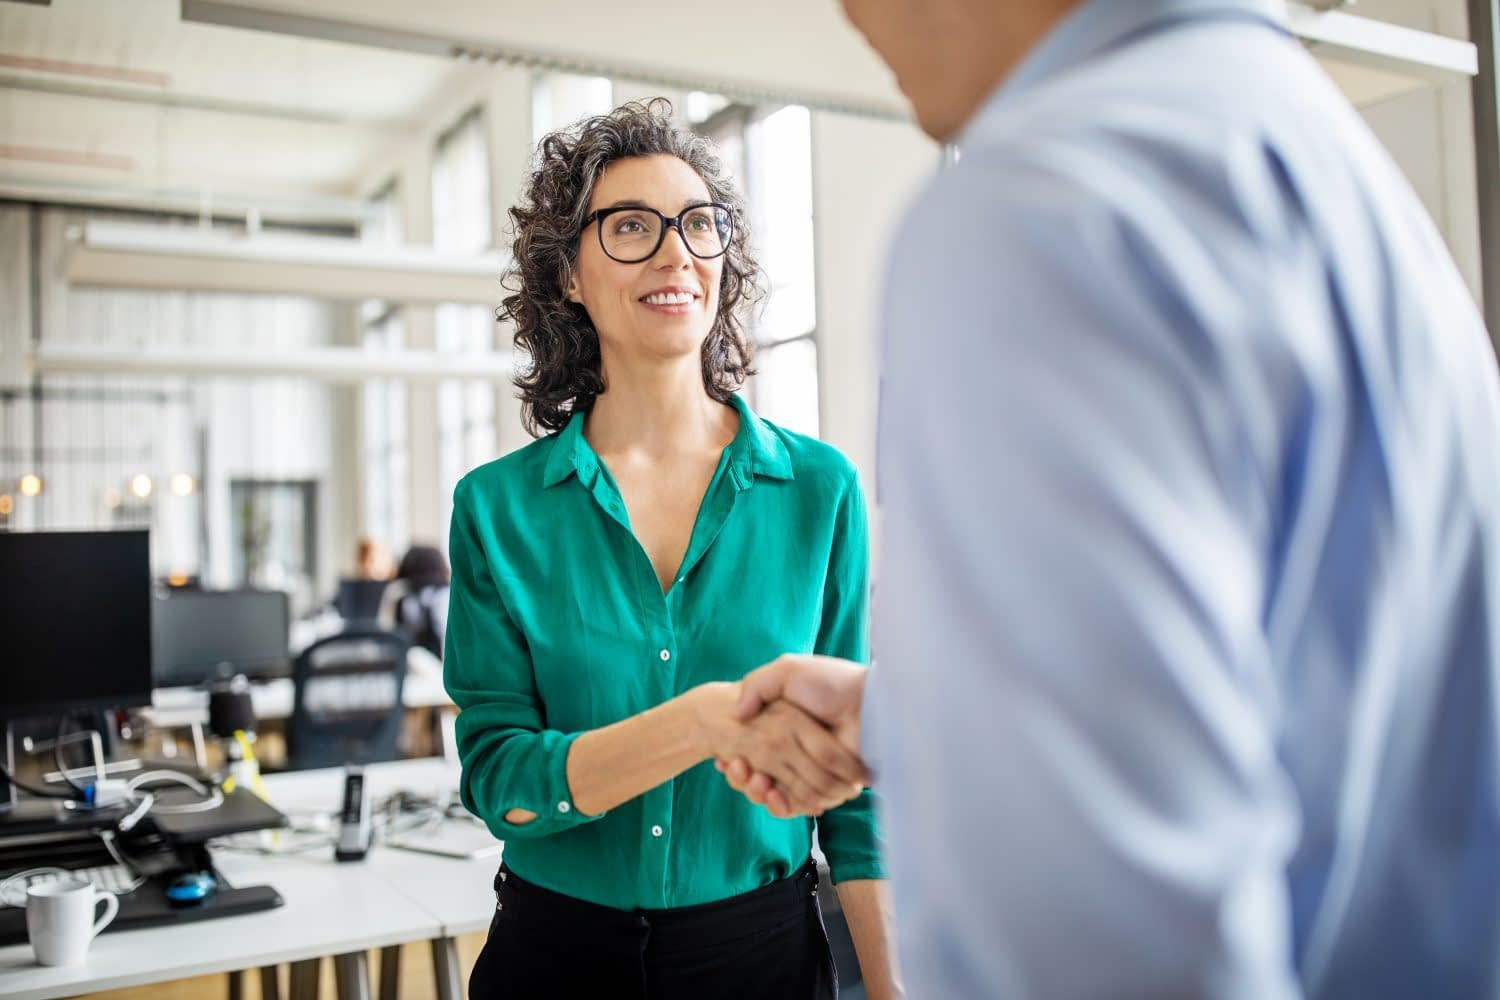 Mature woman shaking hands with male colleague. Mid adult business woman shaking hands with businessman in office.